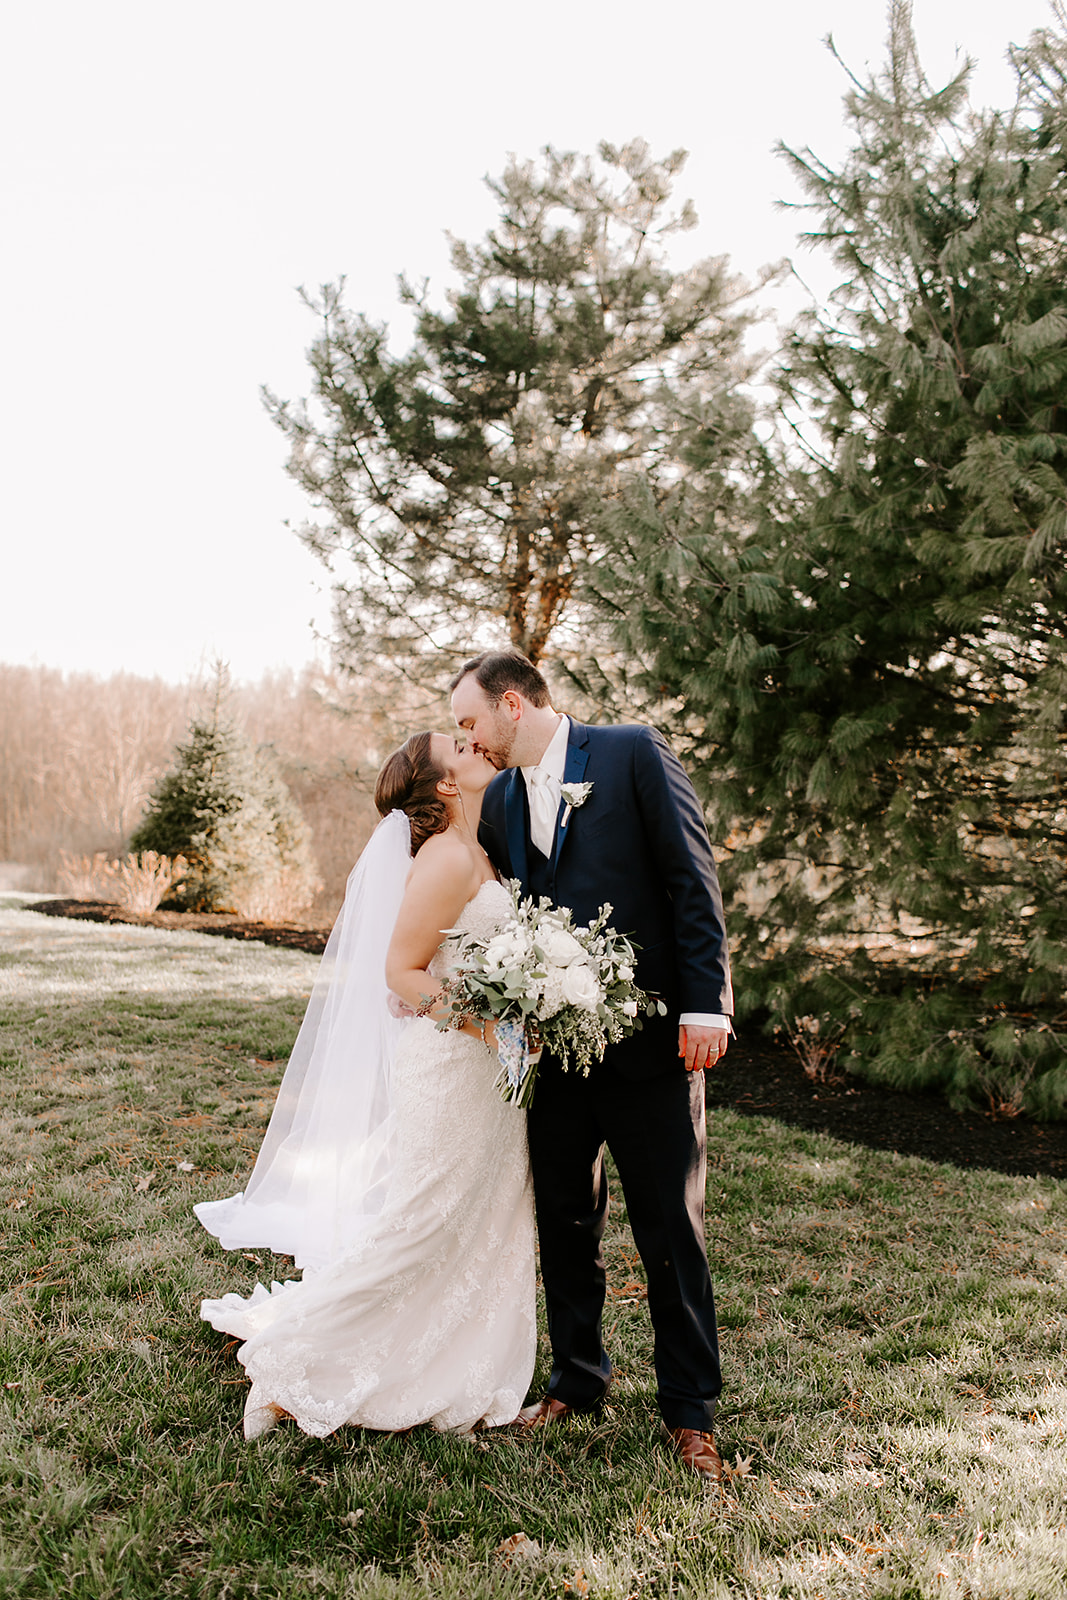 Lauren_and_Andrew_Mustard_Seed_Gardens_Noblesville_Indiana_by_Emily_Wehner_Photography-696.jpg